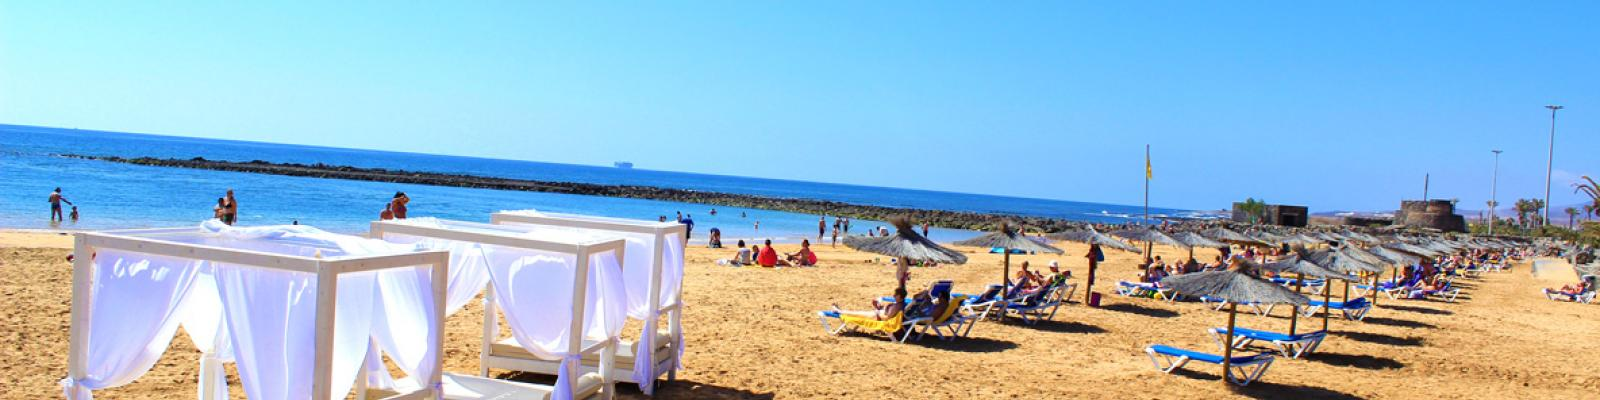 Affordable all inclusive hotel in Fuerteventura